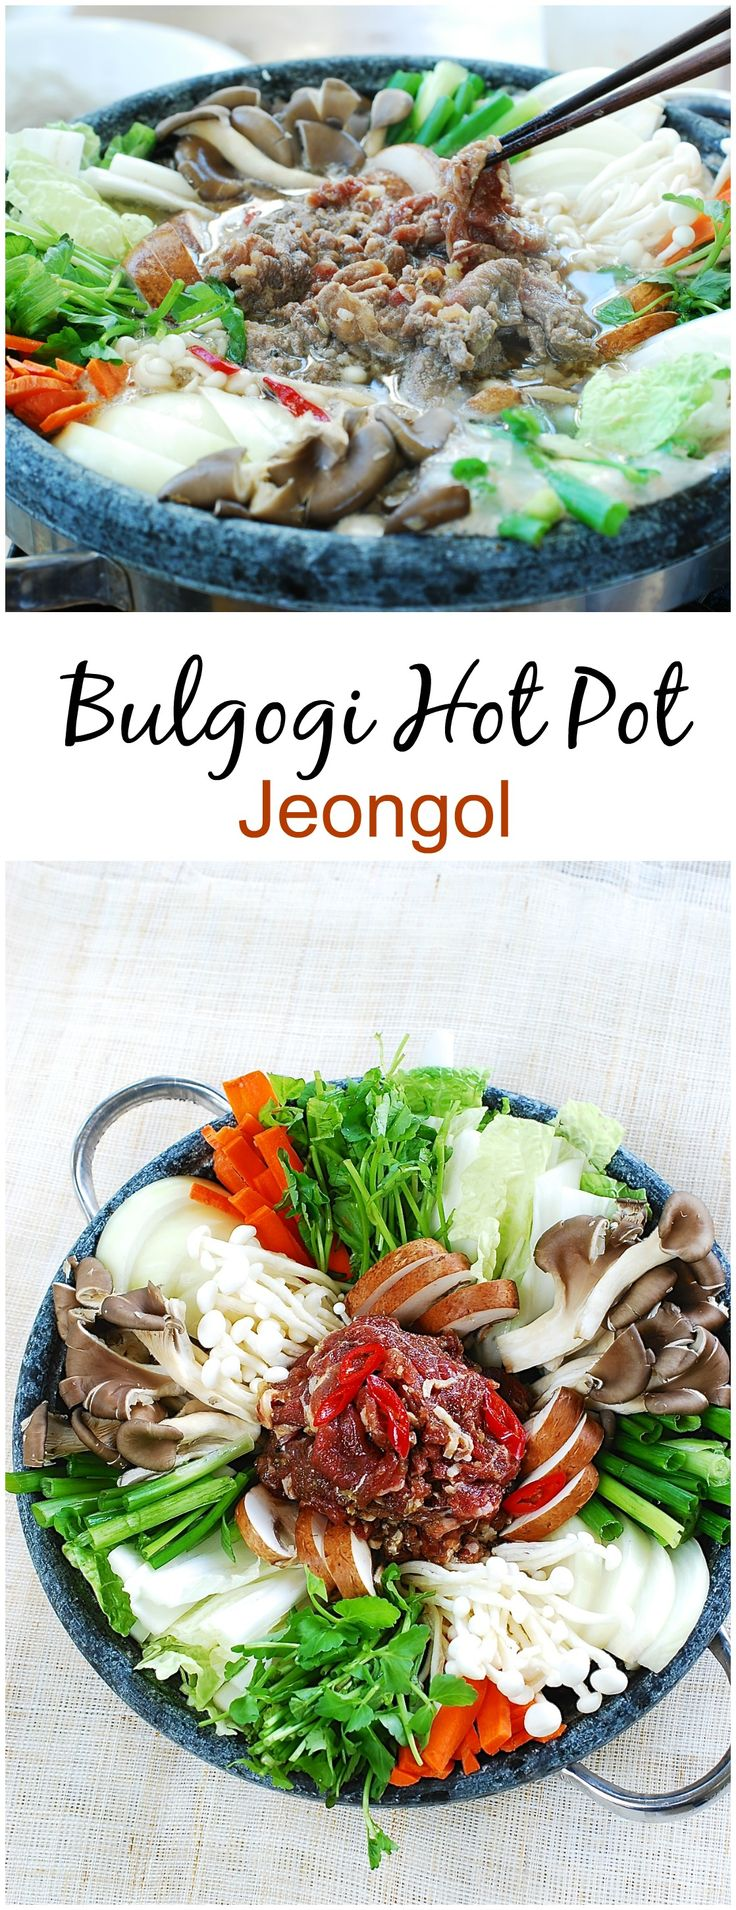 Sweet and savory bulgogi in a hot pot - perfect comfort food for the cool weather!